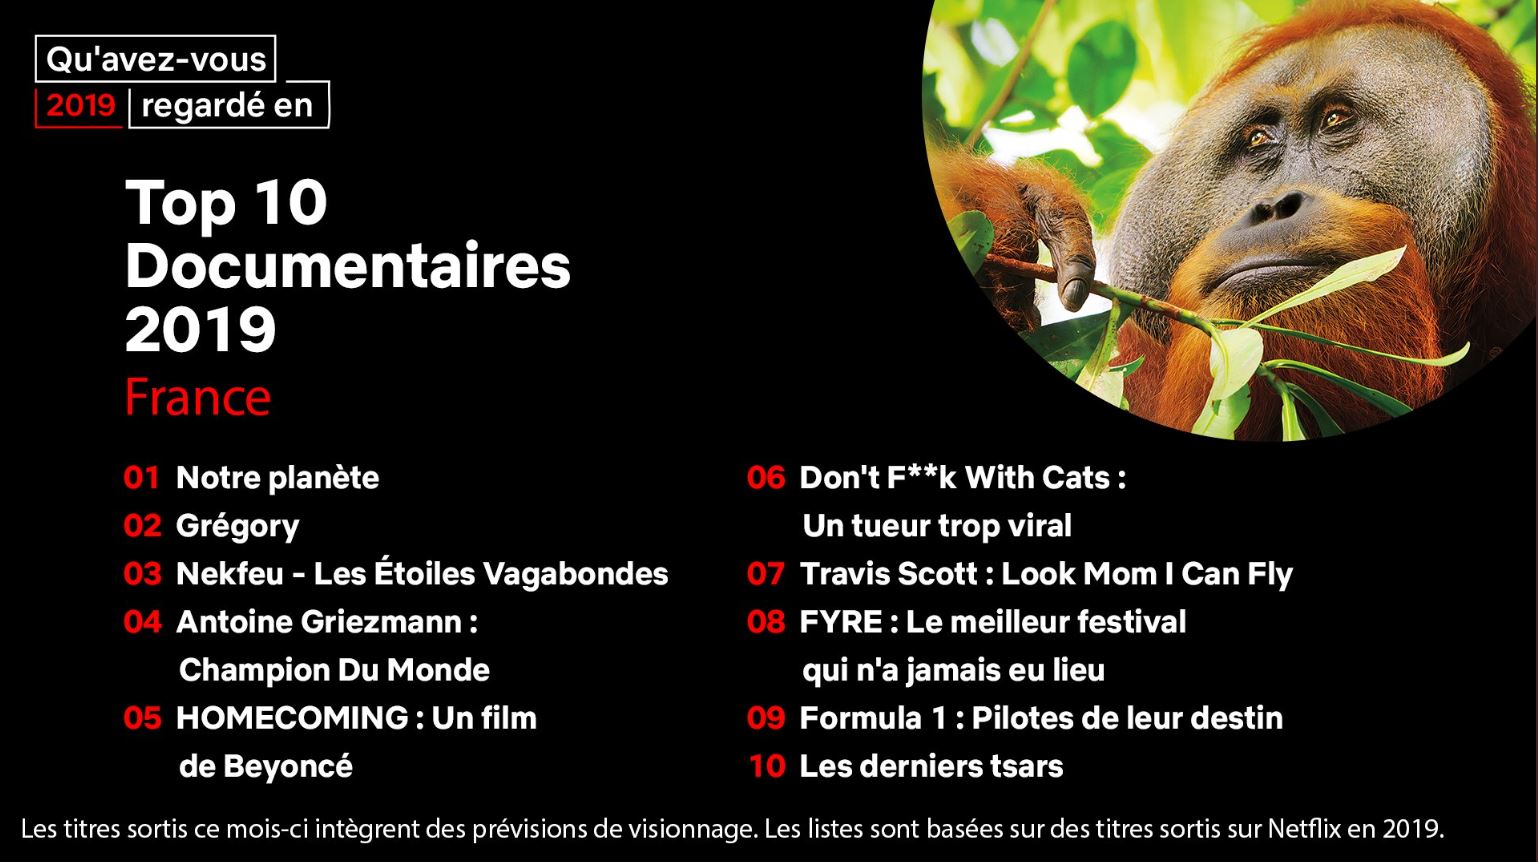 Top 10 documentaires